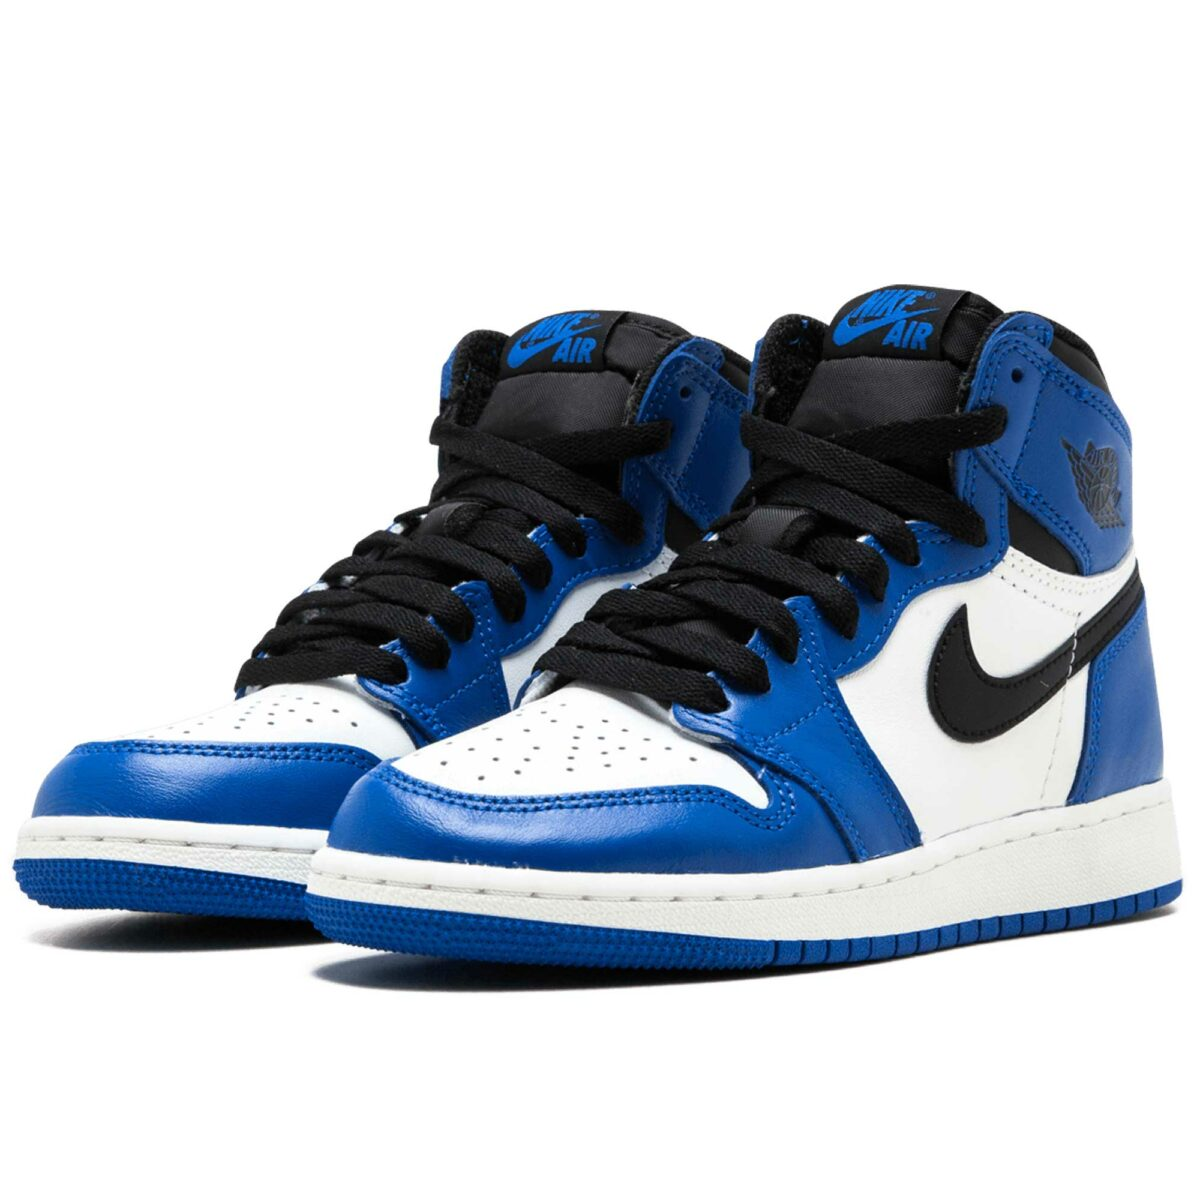 nike air Jordan 1 retro high og bg game royal 575441_403 купить